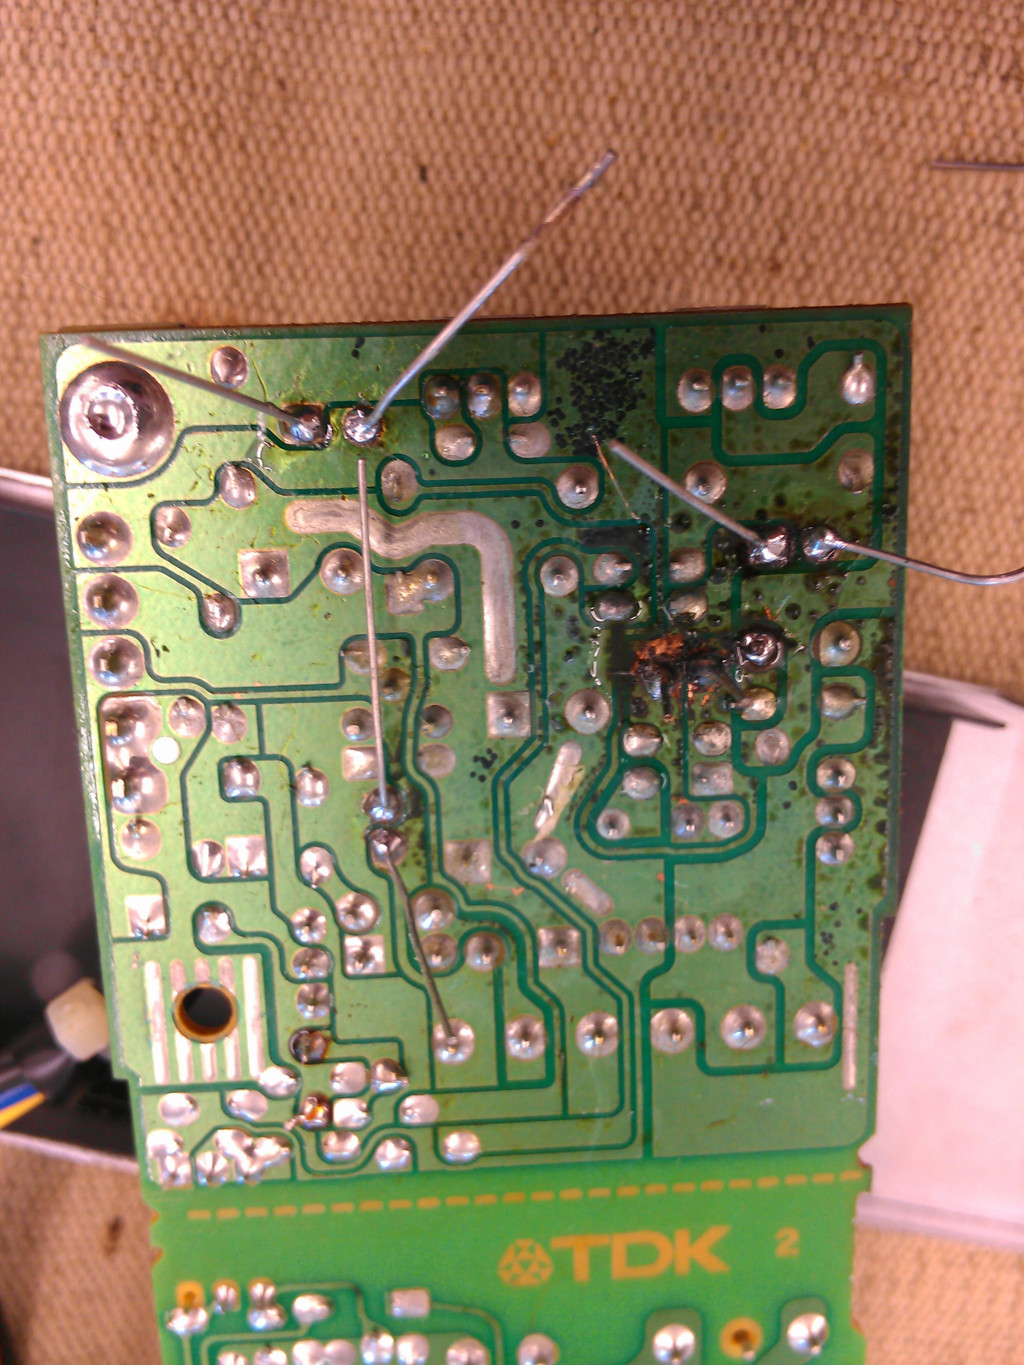 Corroded PCB in the LC PSU.